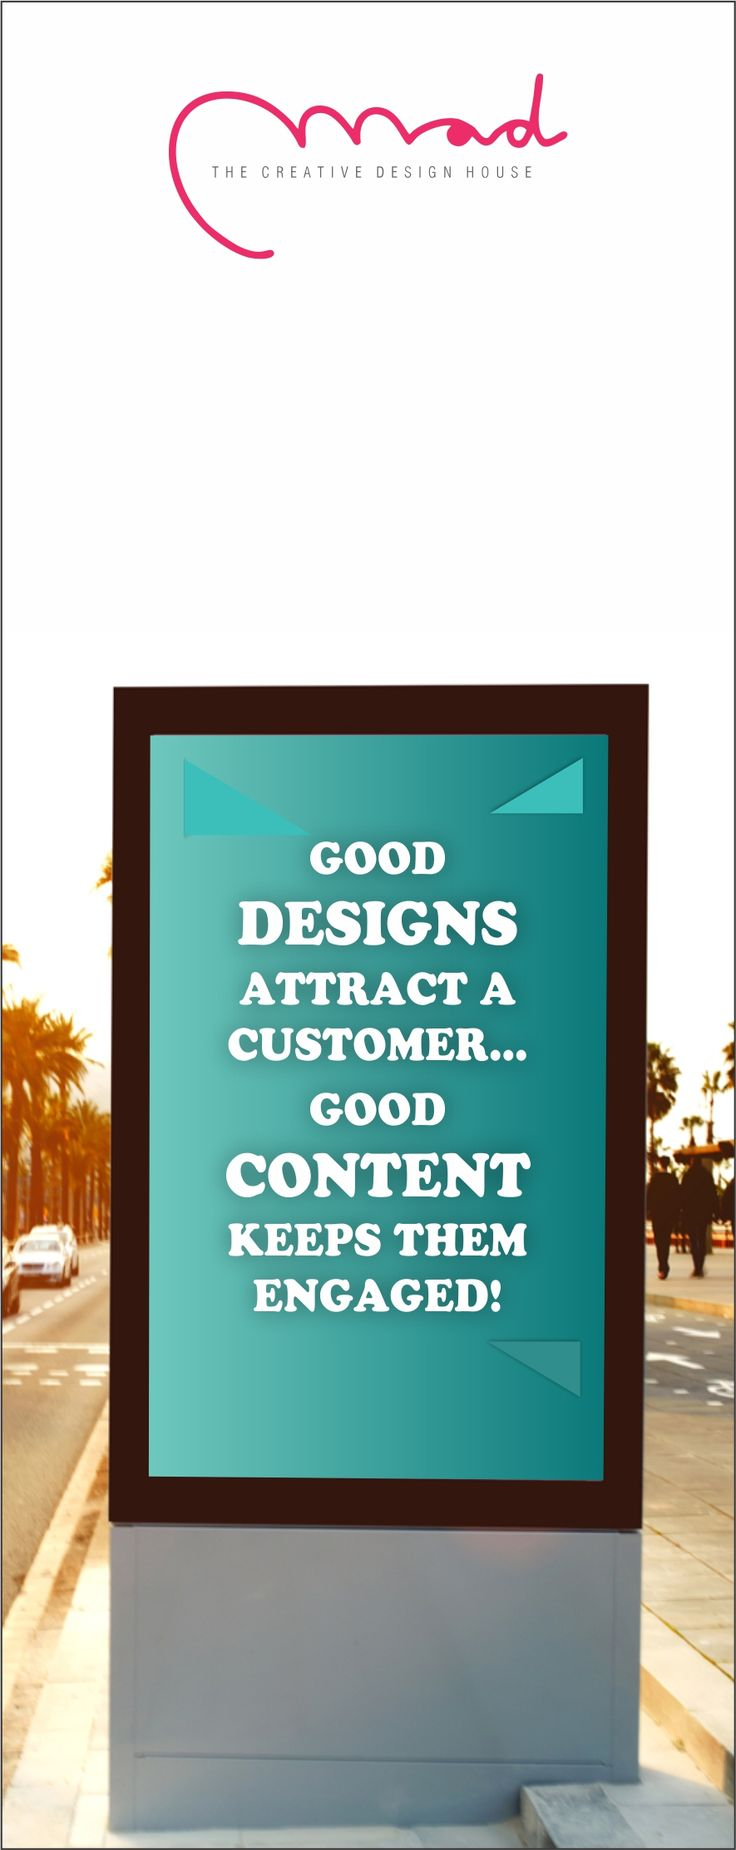 Whenever it comes to representing your company, let great content be part of it. Hire the professionals, today! #MadDesigns #BrandDesign #BrandConsultancy #brand #india #GoodDesigns #GoodContent